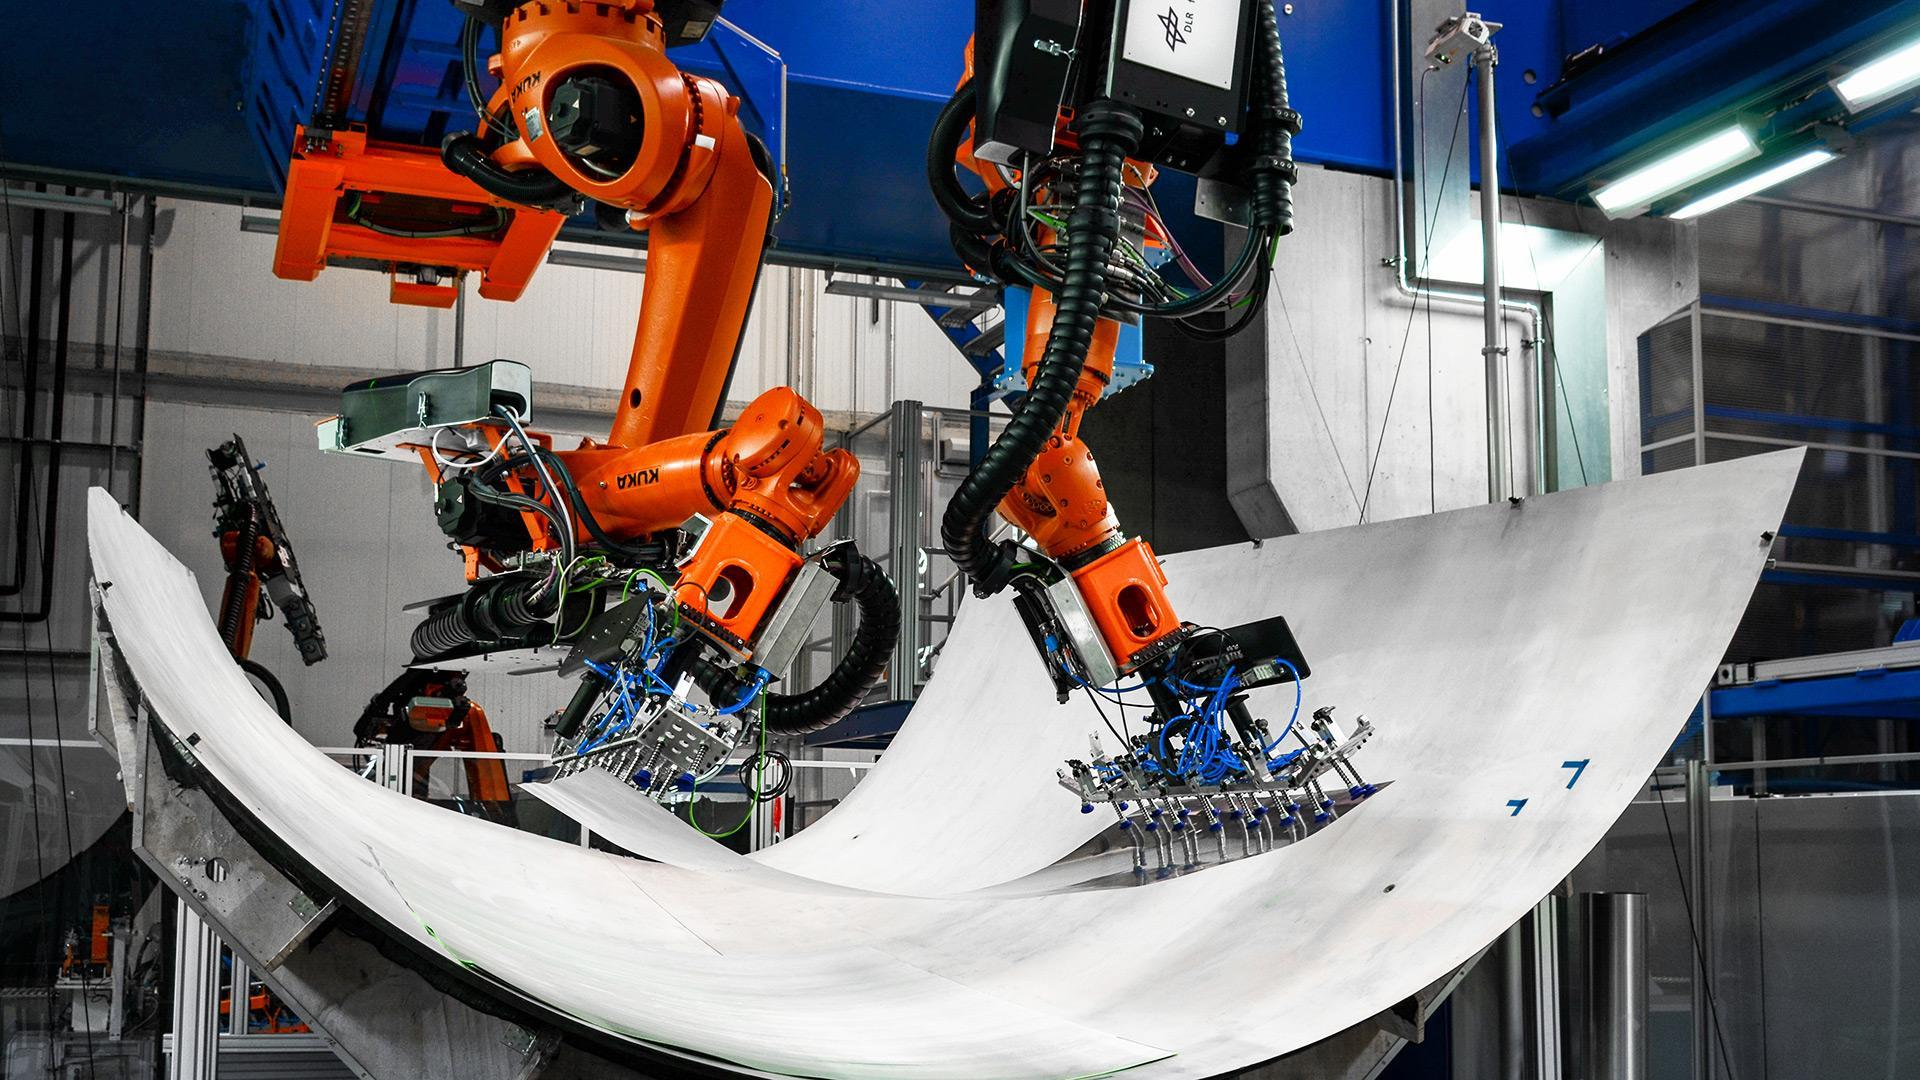 Automated handling of materials via cooperating robots